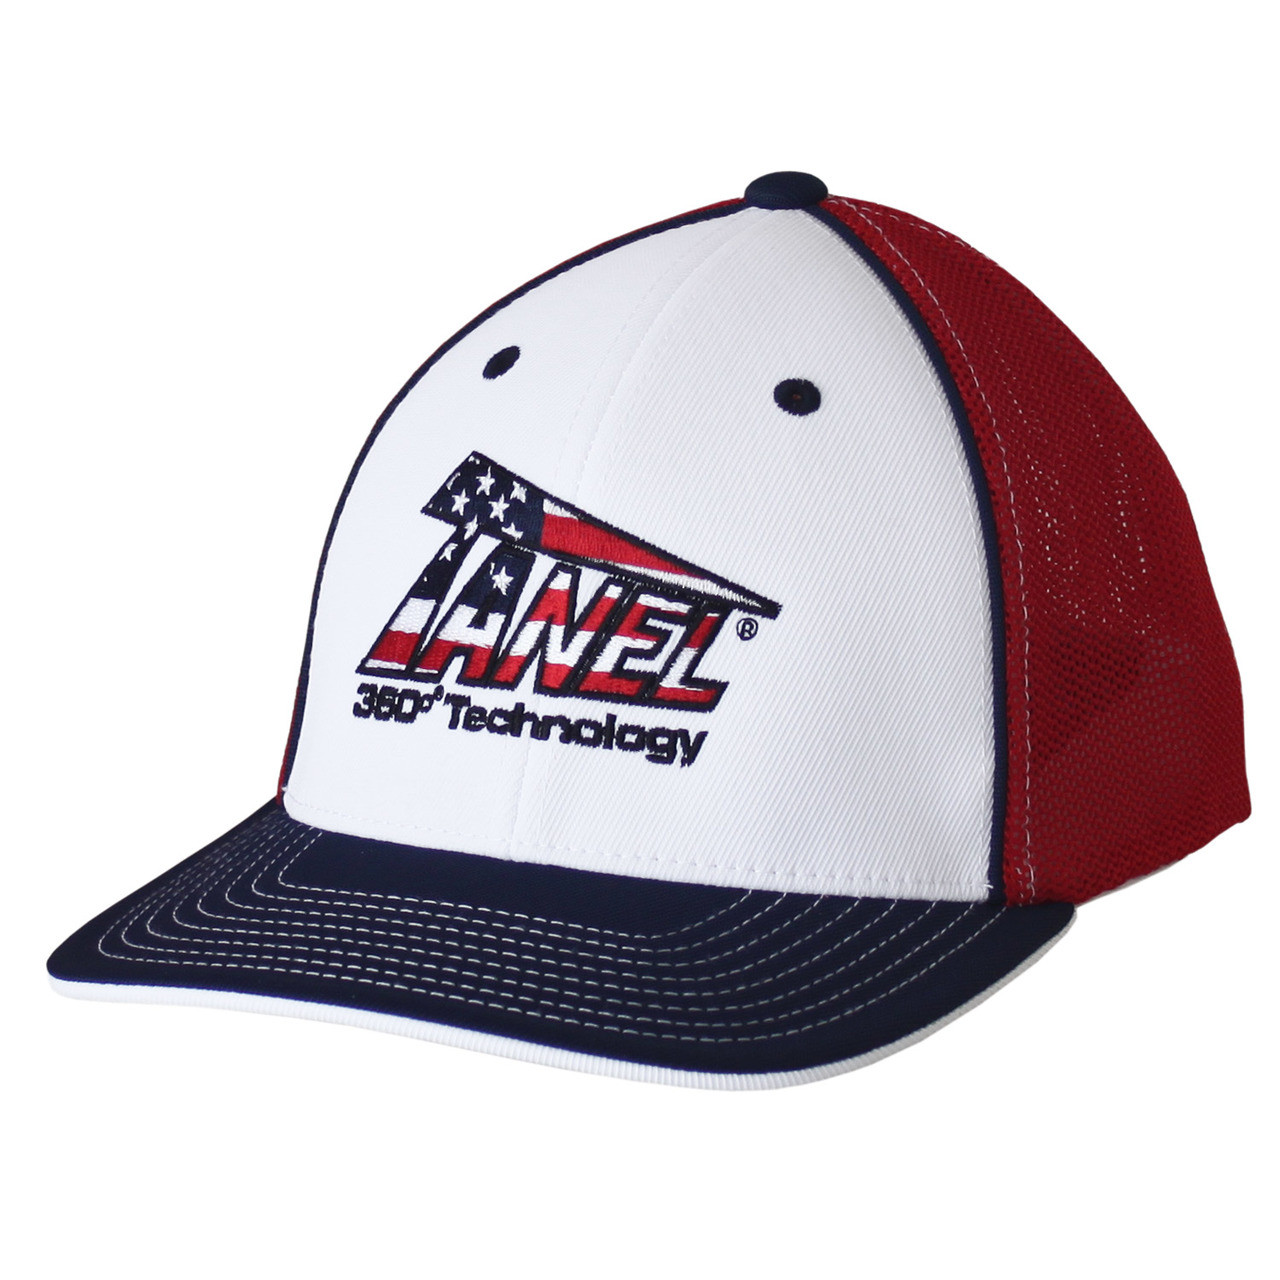 Tanel 360 USA Logo Baseball/Softball Trucker Hat